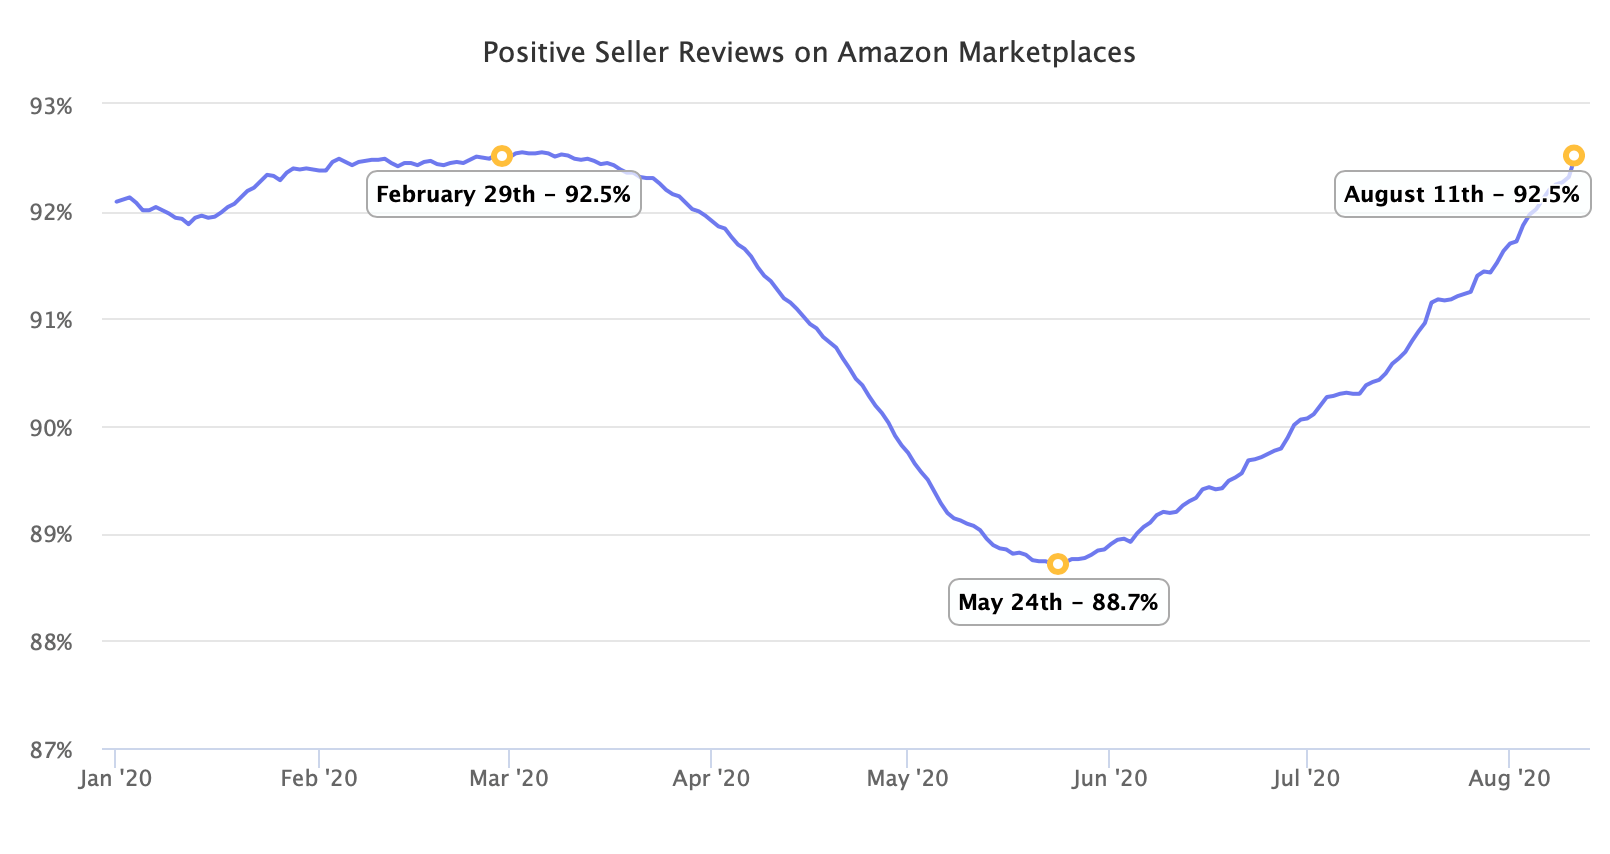 Positive Seller Reviews on Amazon Marketplaces